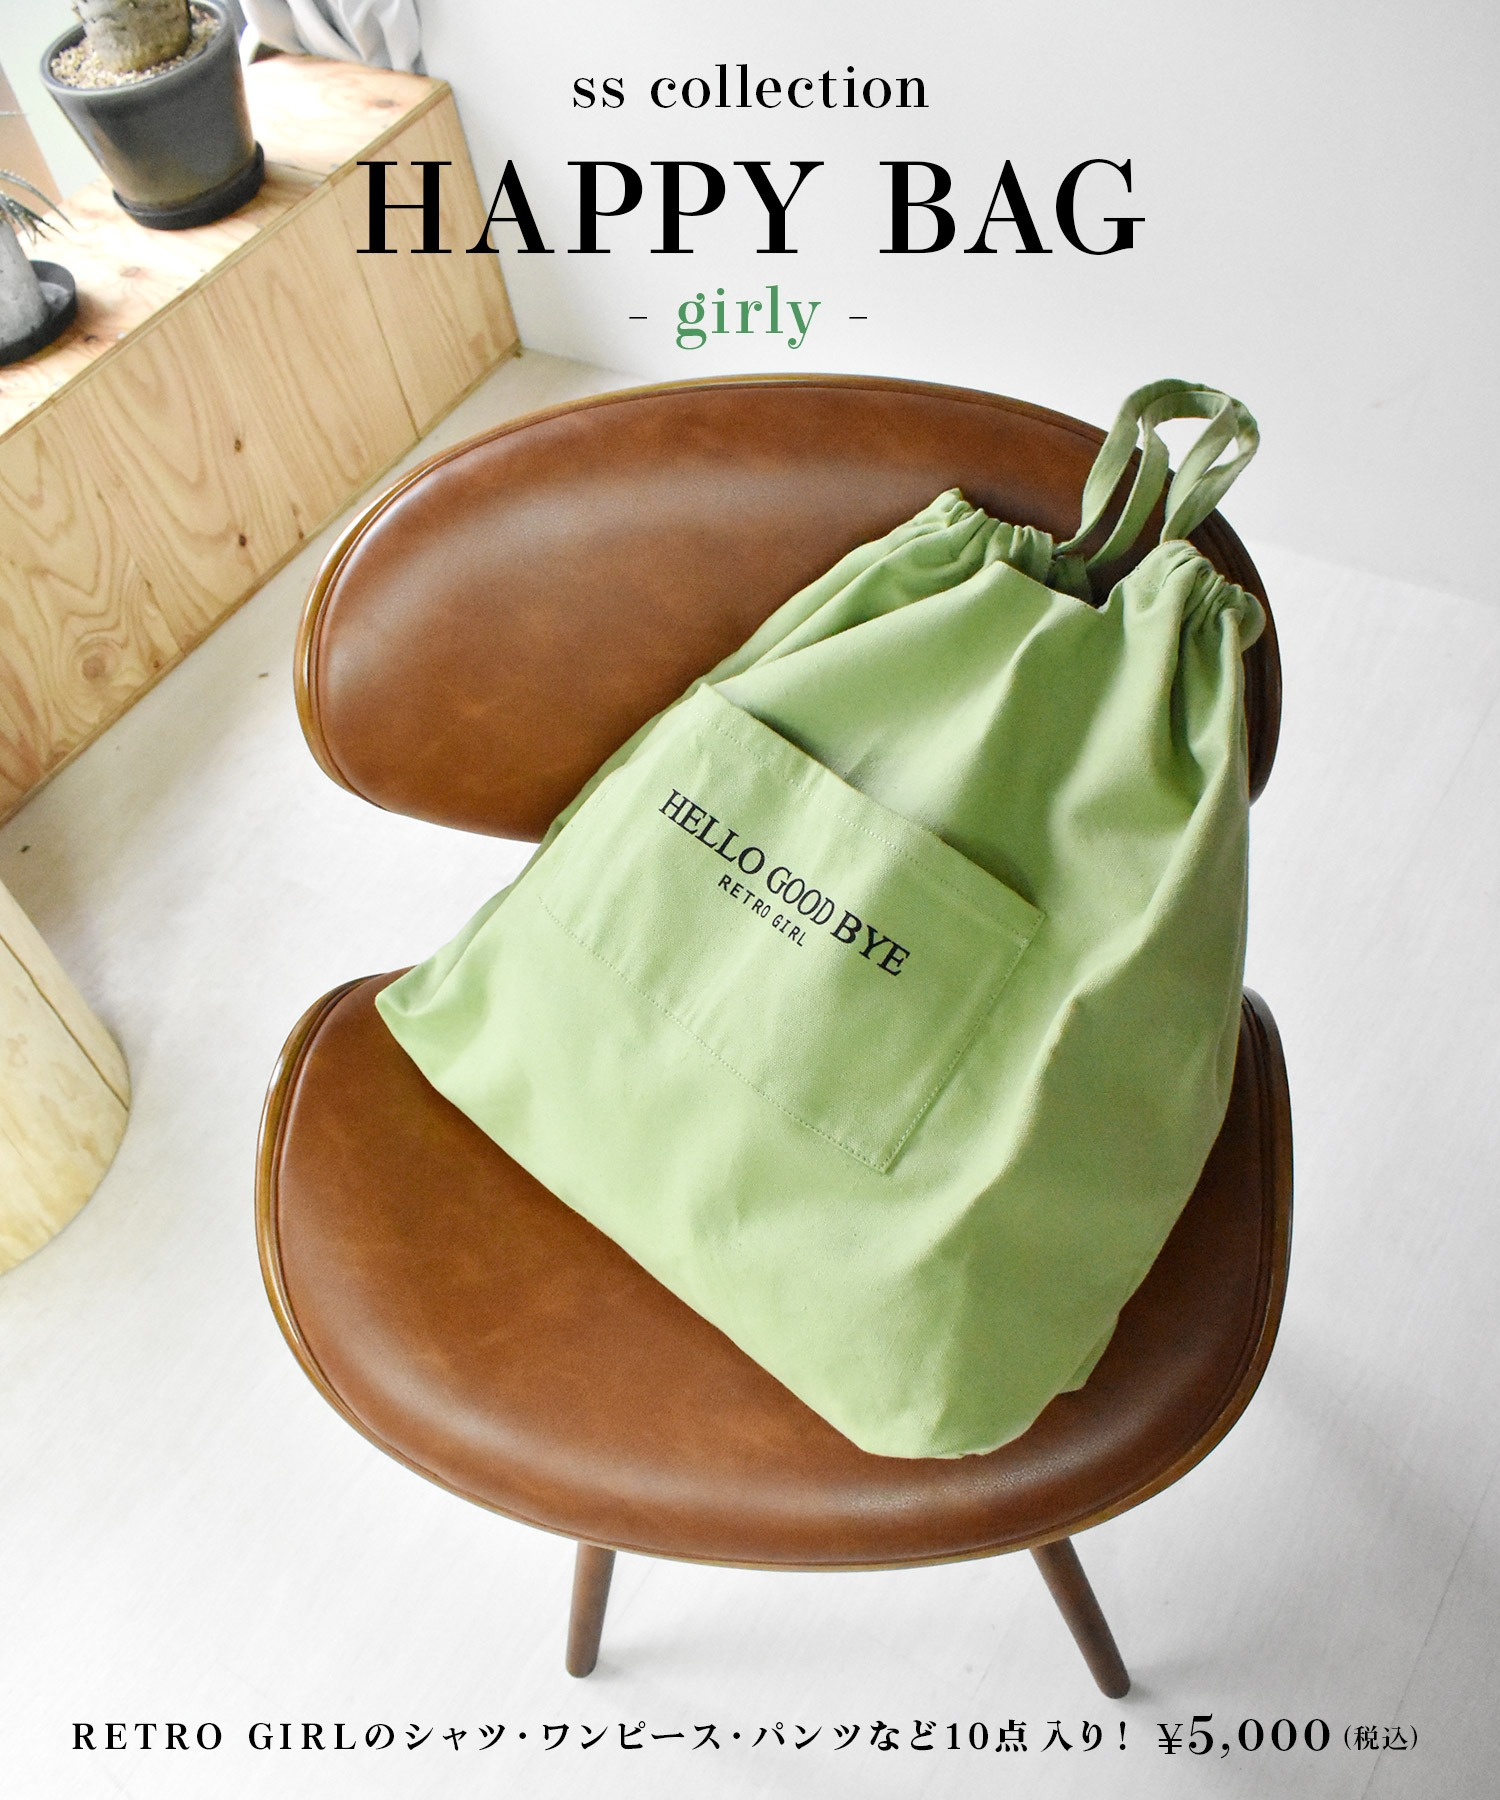 【Happy Bag】RETRO GIRL